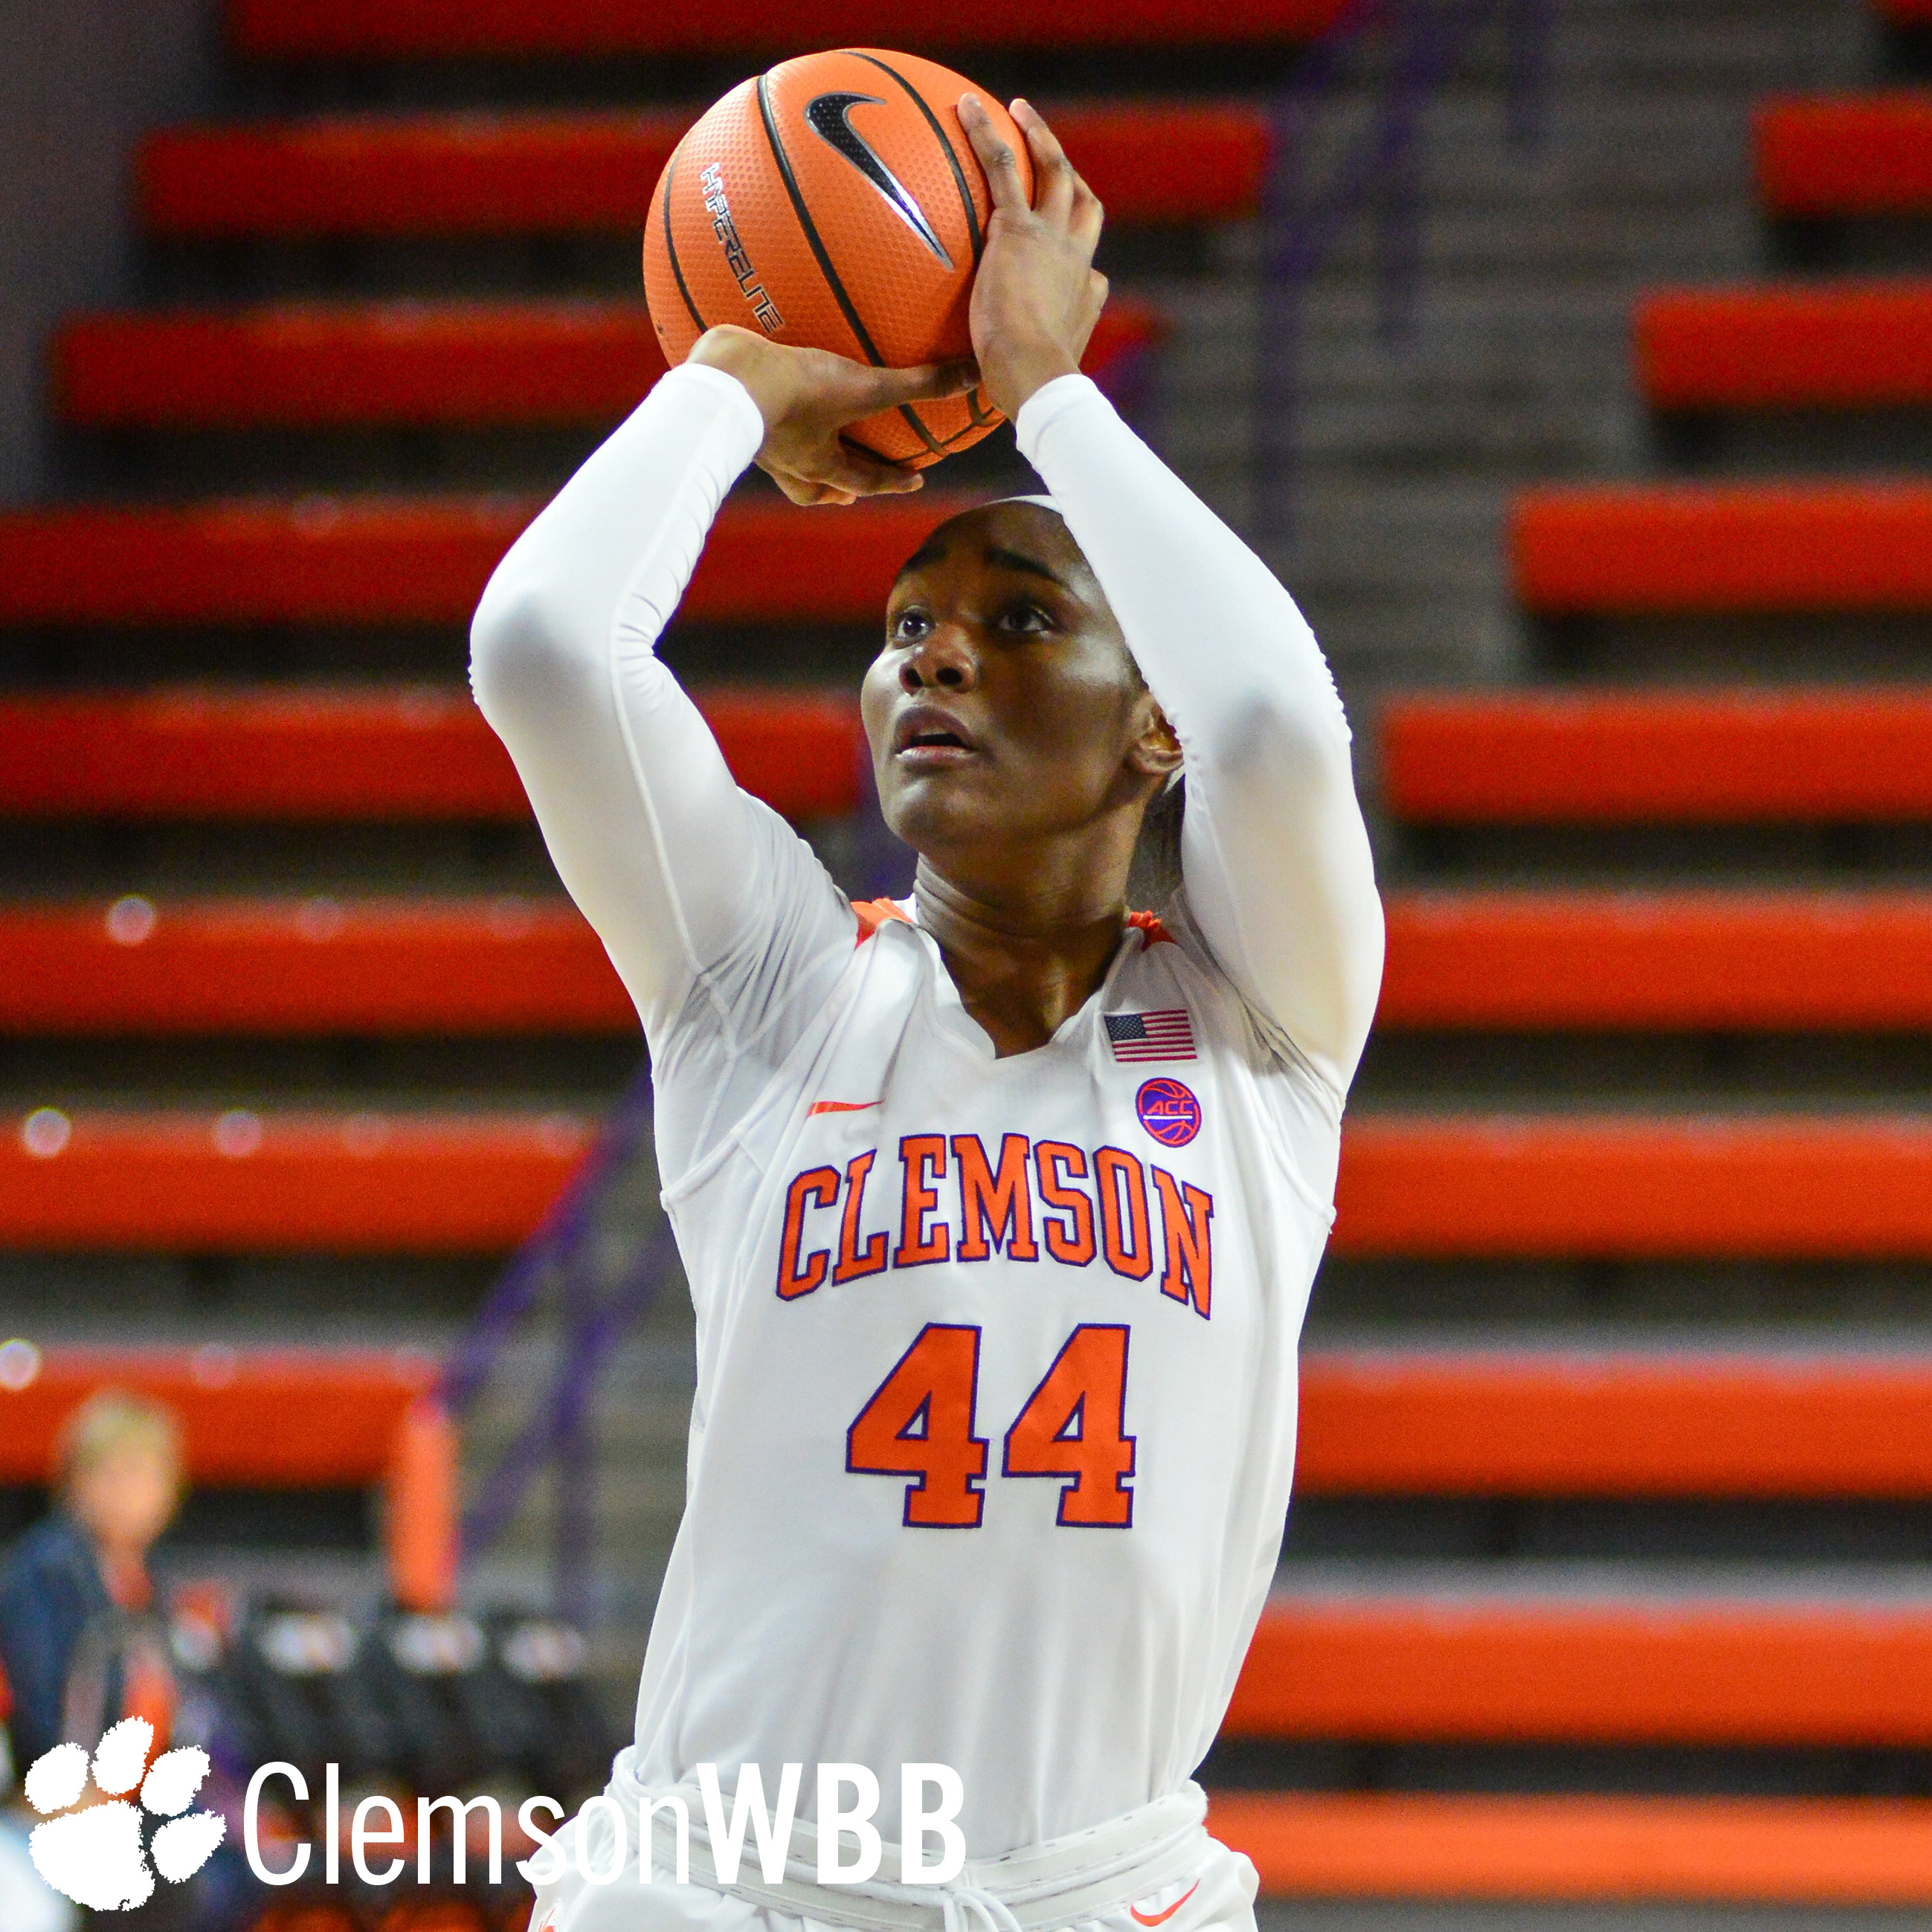 Clemson Falls to Georgia Tech in Atlanta Sunday